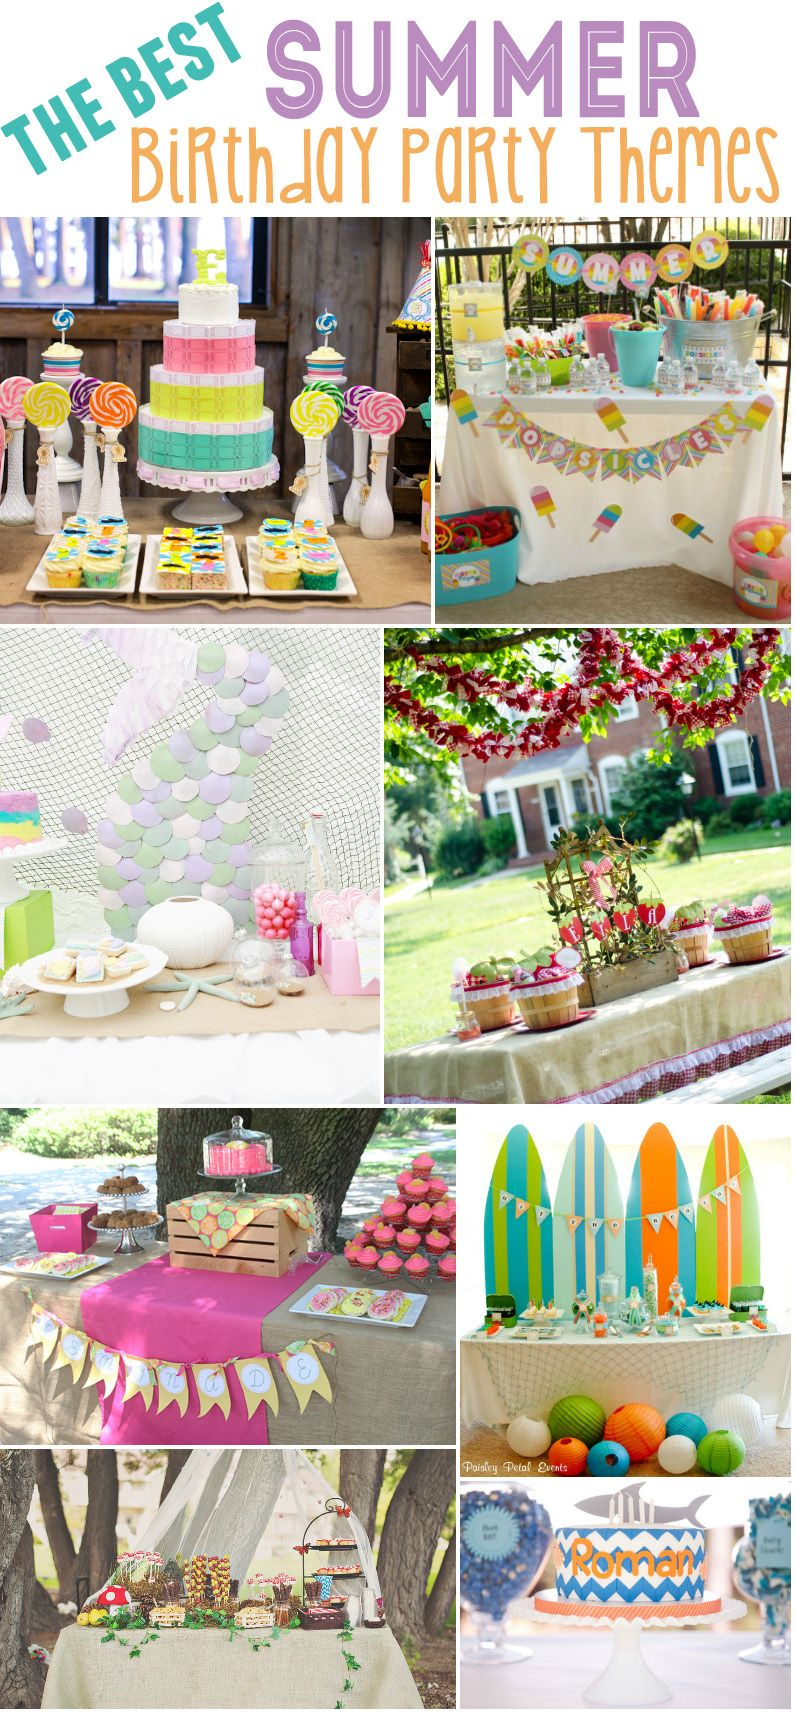 15 Best Summer Birthday Party Themes With Images Summer